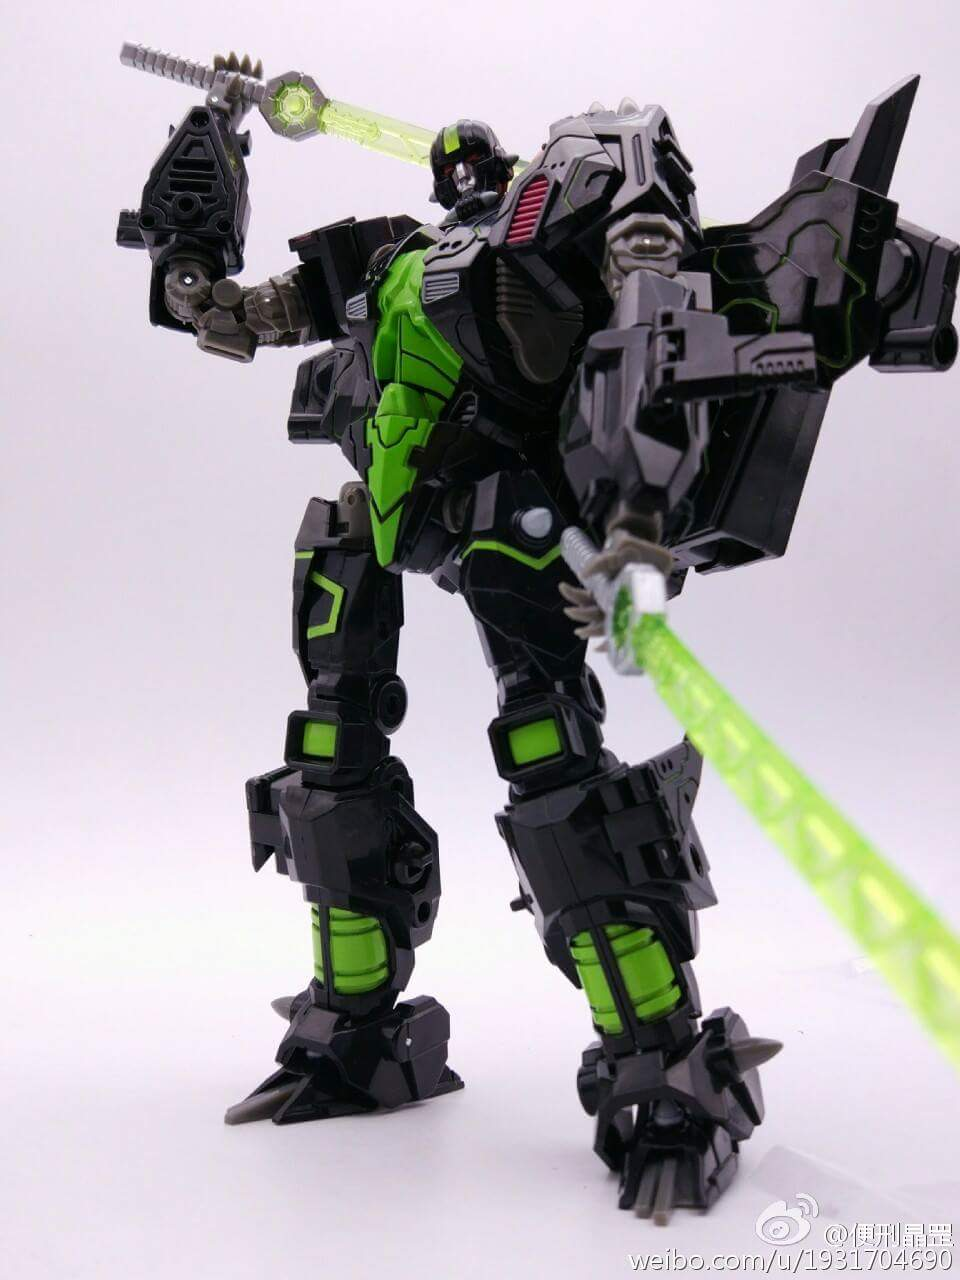 [Mastermind Creations] Produit Tiers - R-15 Jaegertron - aka Lockdown des BD IDW - Page 2 PsYzjtK1